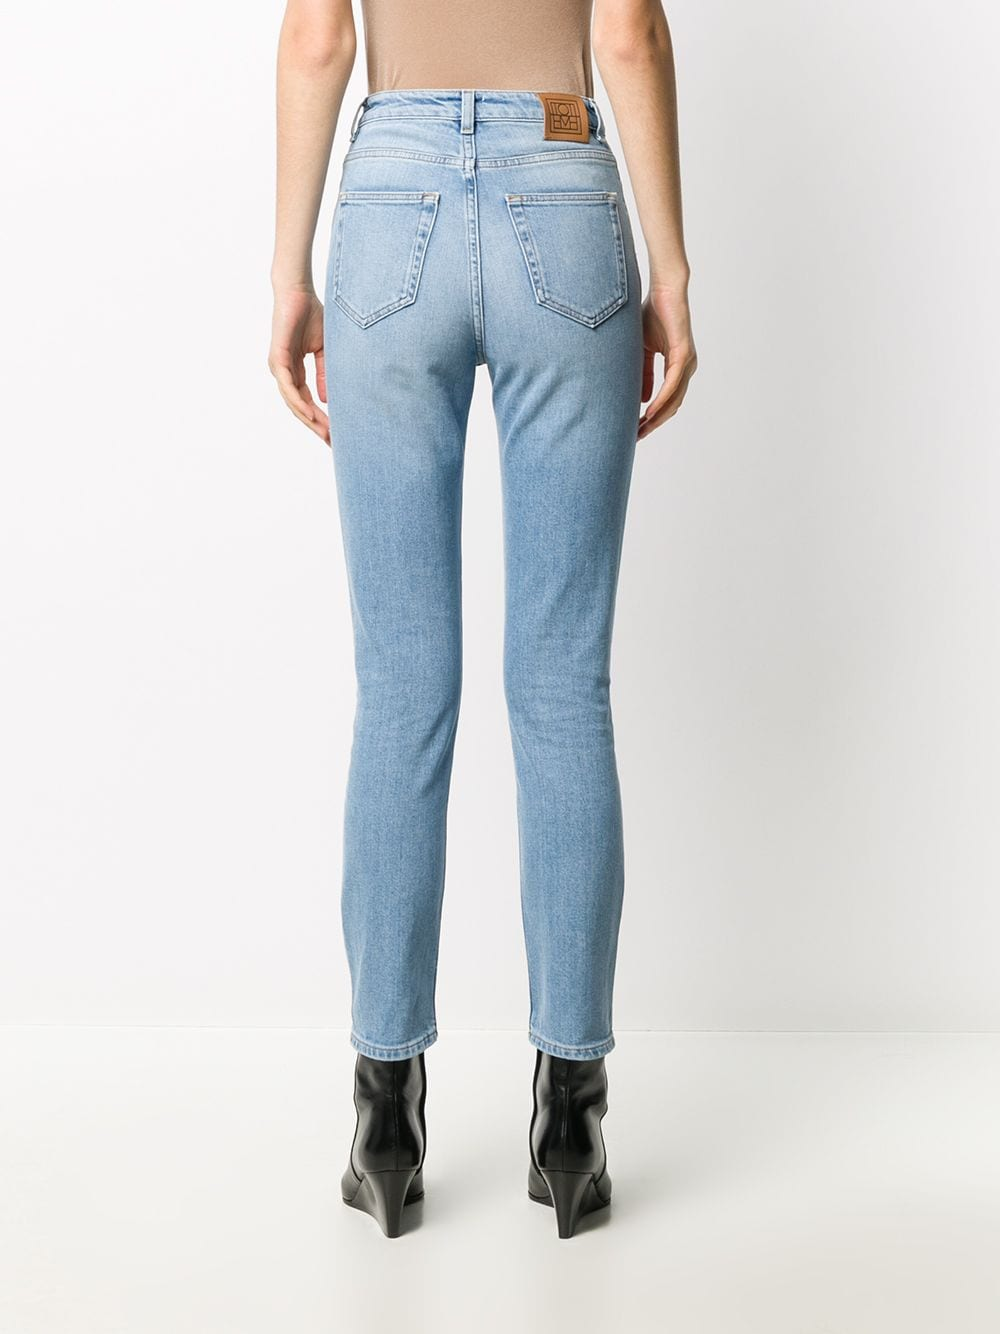 TOTEME WOMEN NEW STANDARD DENIM